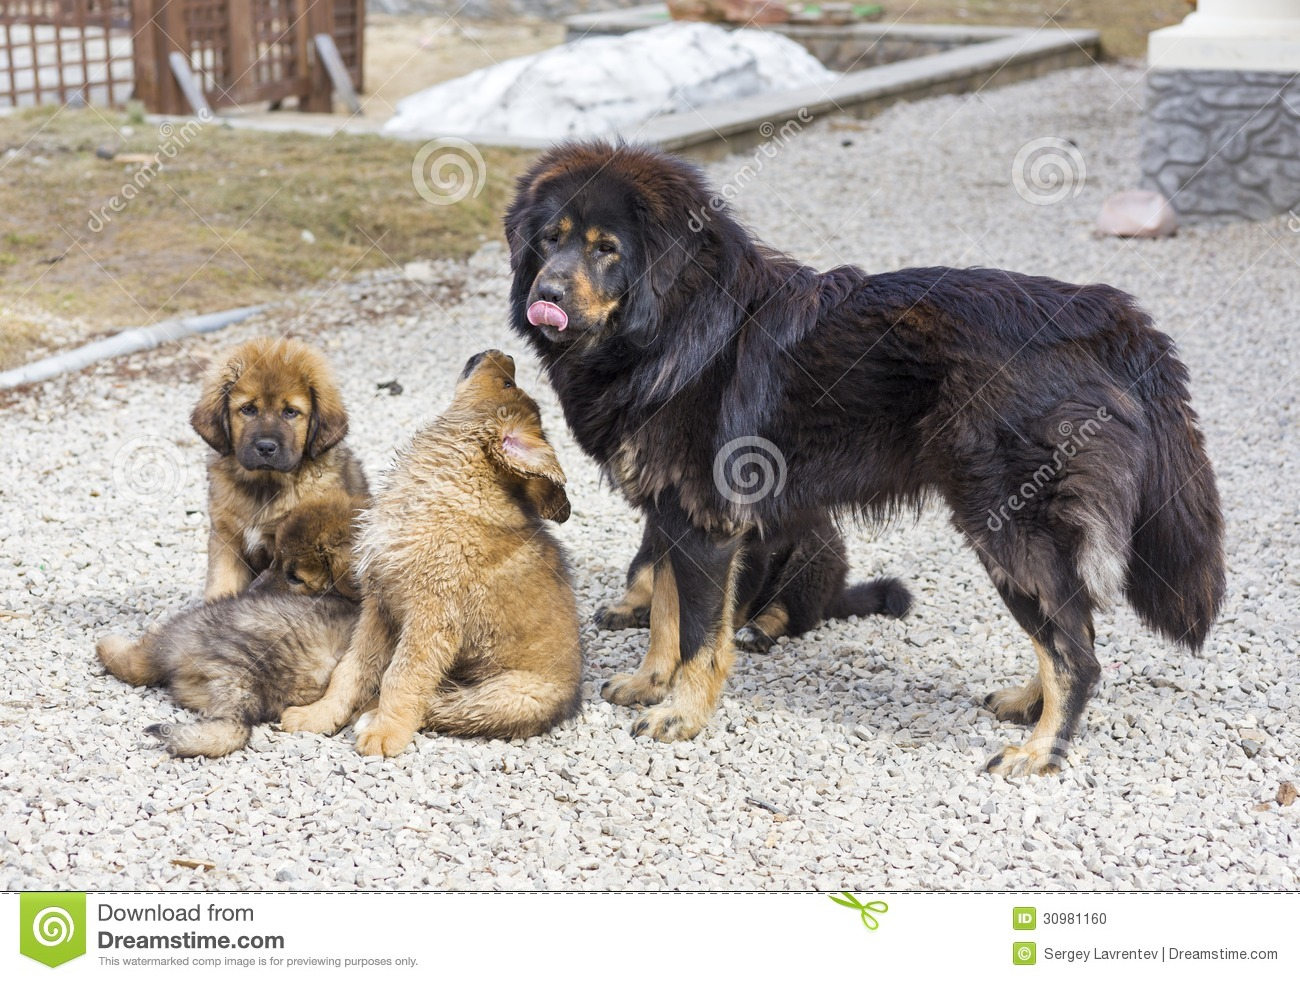 Dog Breed Tibetan Mastiff With Puppies Stock Photo - Image of black